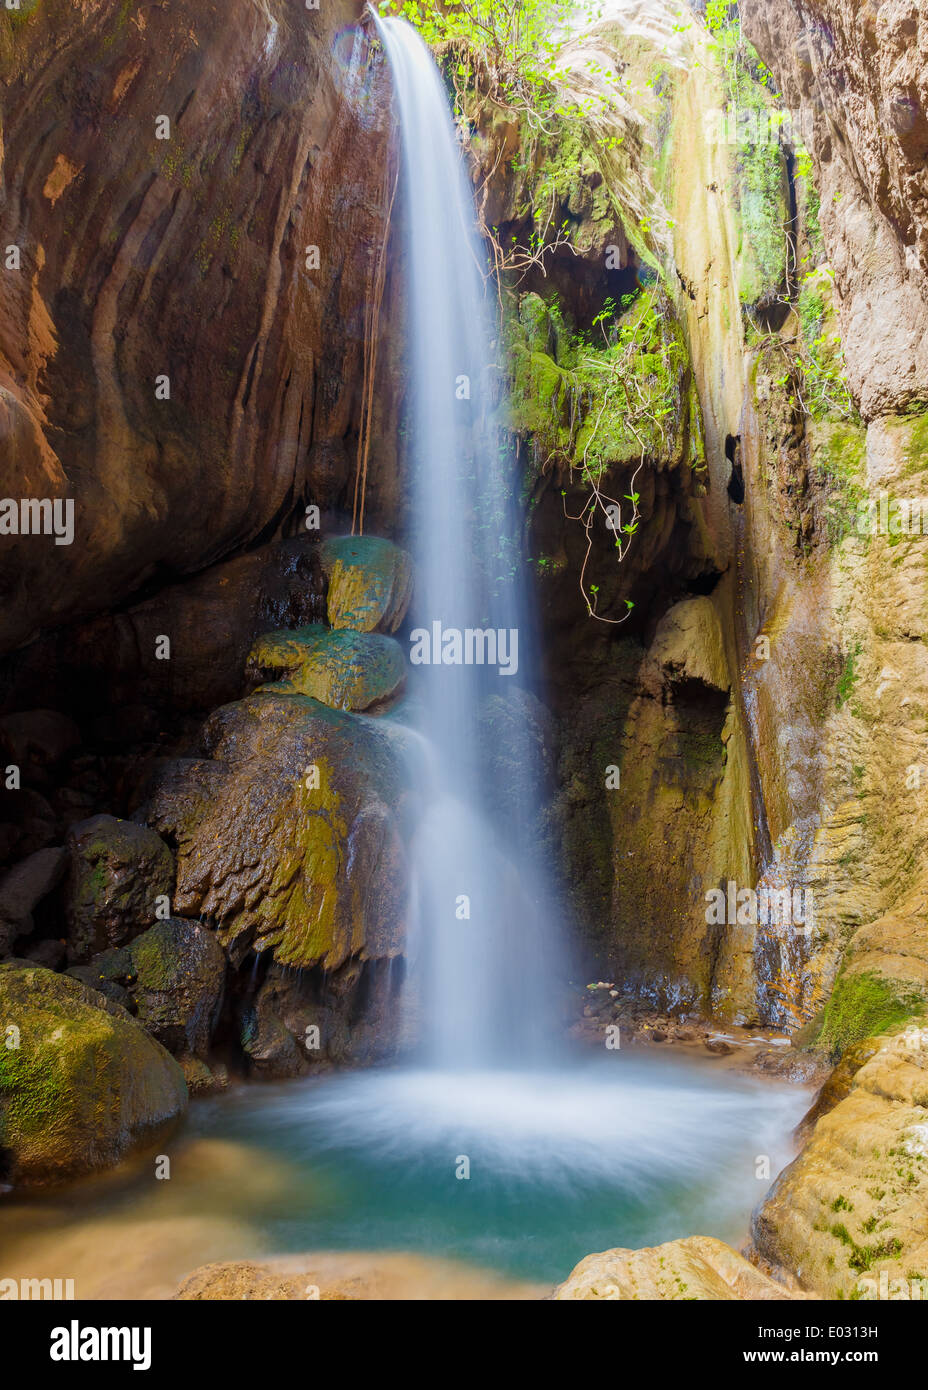 Small waterfall deep in rain forest, shot in long exposure - Stock Image